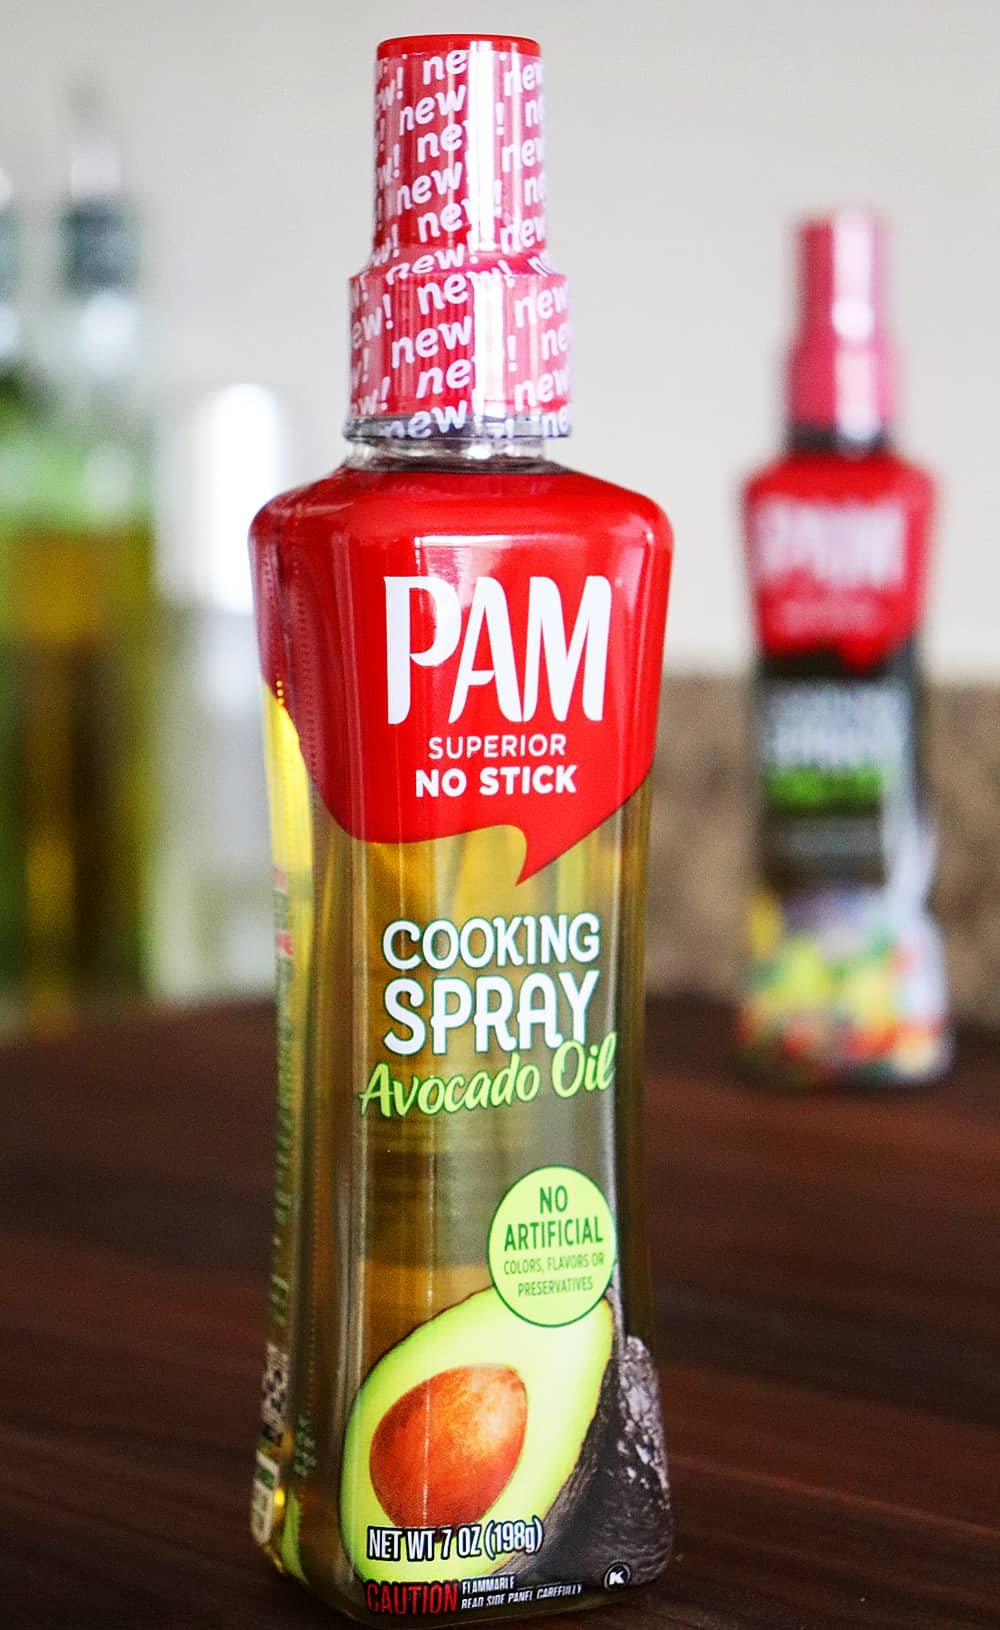 Close up shot of PAM Avocado Oil Cooking Spray bottle